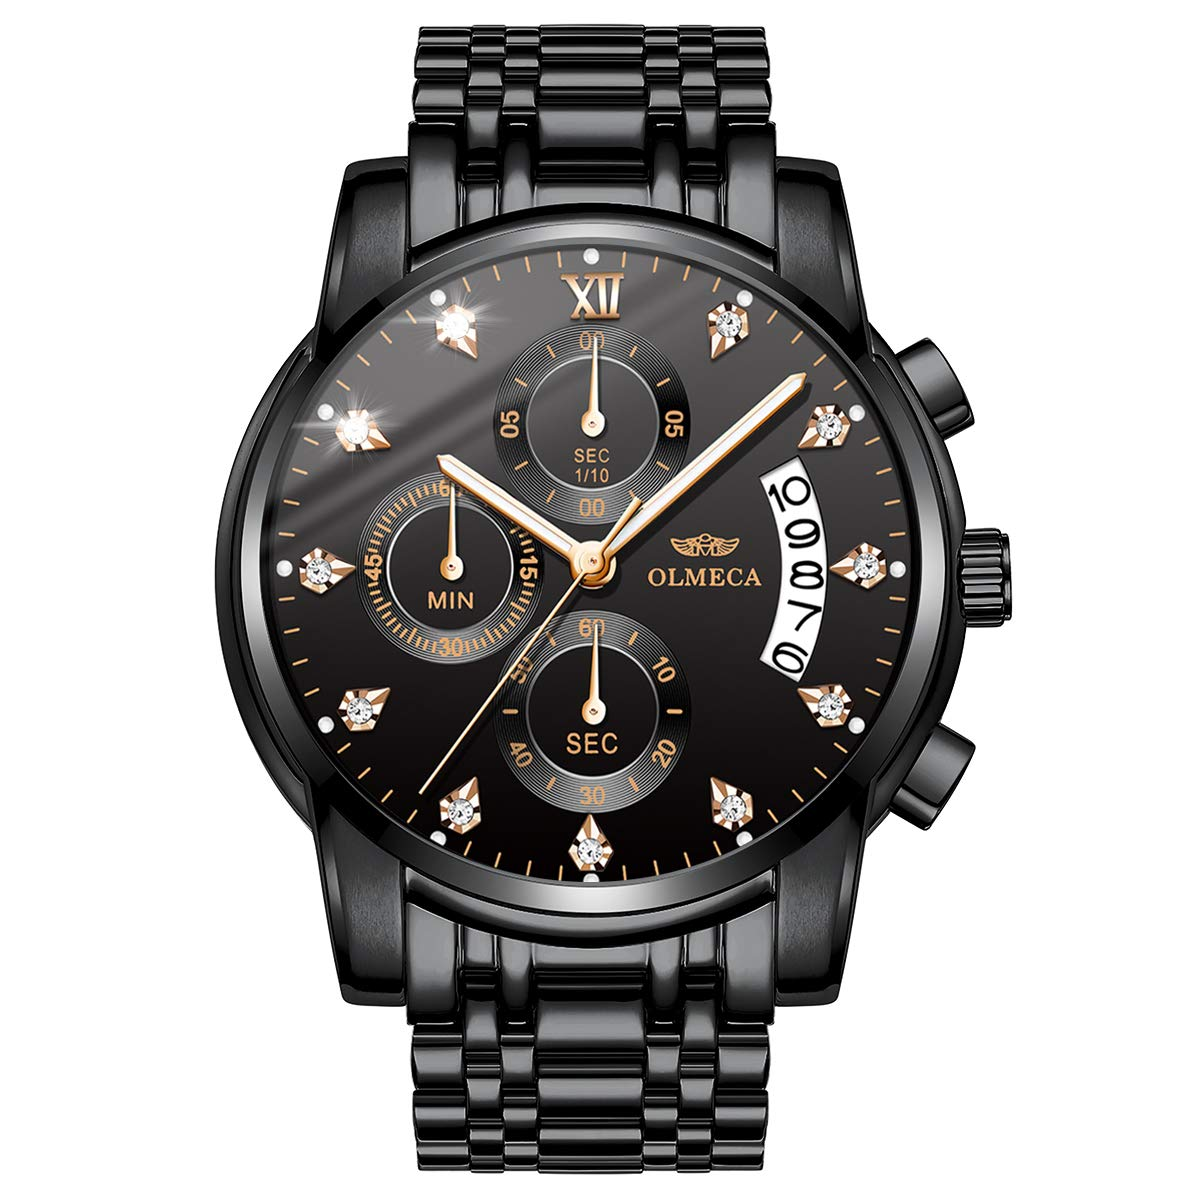 Men's Watches Luxury Diamonds Sports Casual Dress Business Watch Quartz Analog Waterproof Chronograph Date Wristwatch Stainless Steel Band Black Color